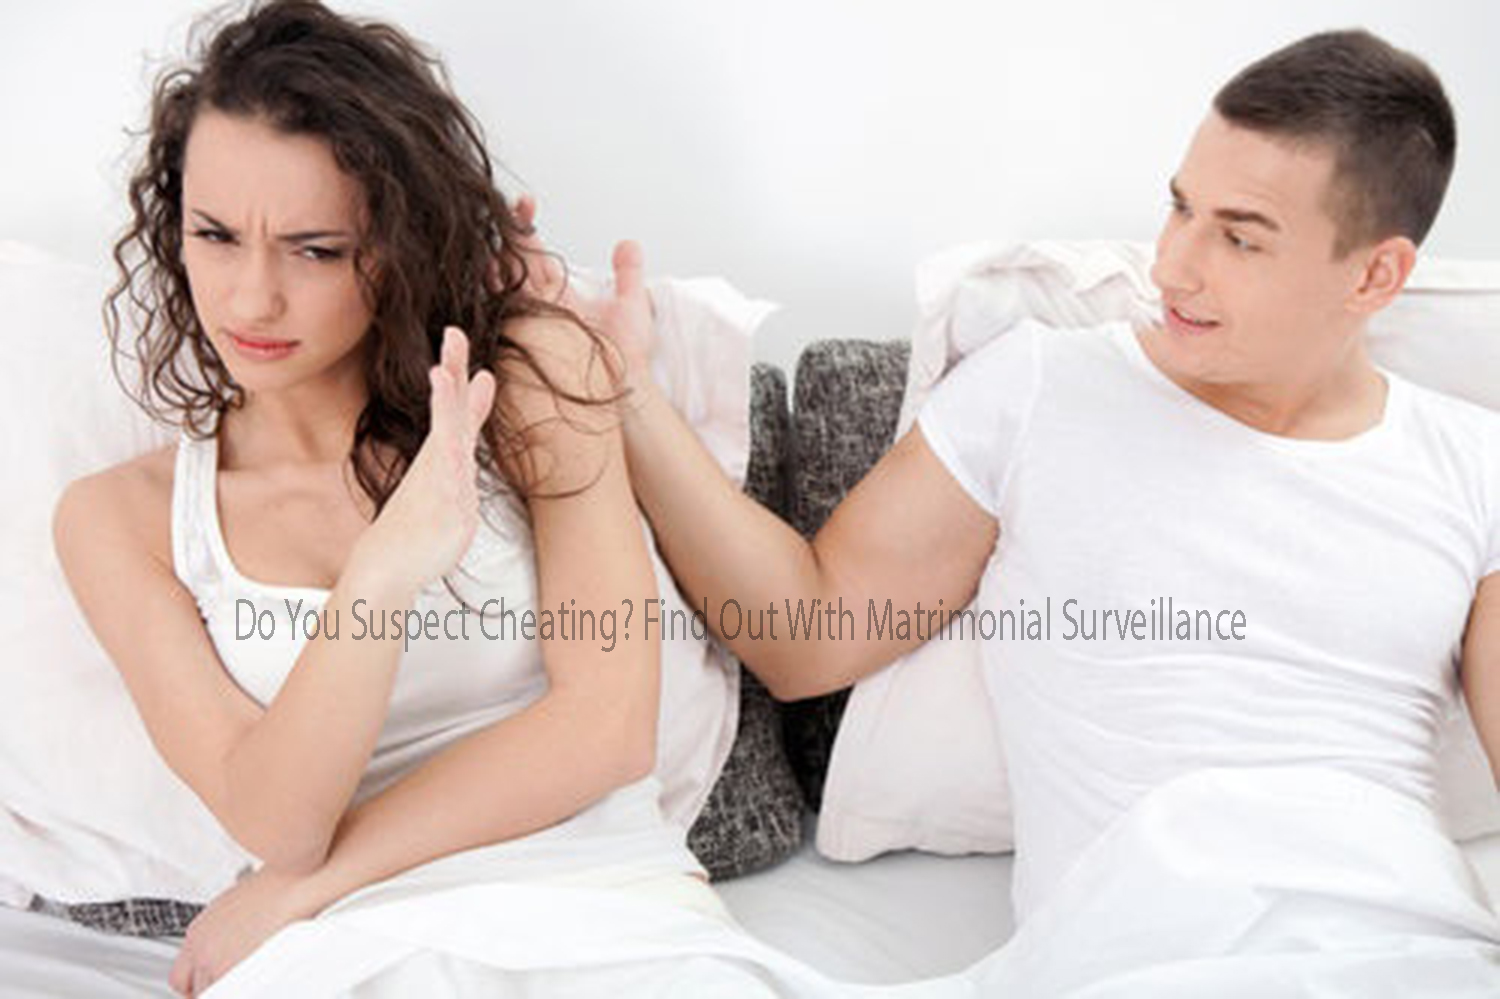 Do You Suspect Cheating? Find Out With Matrimonial Surveillance